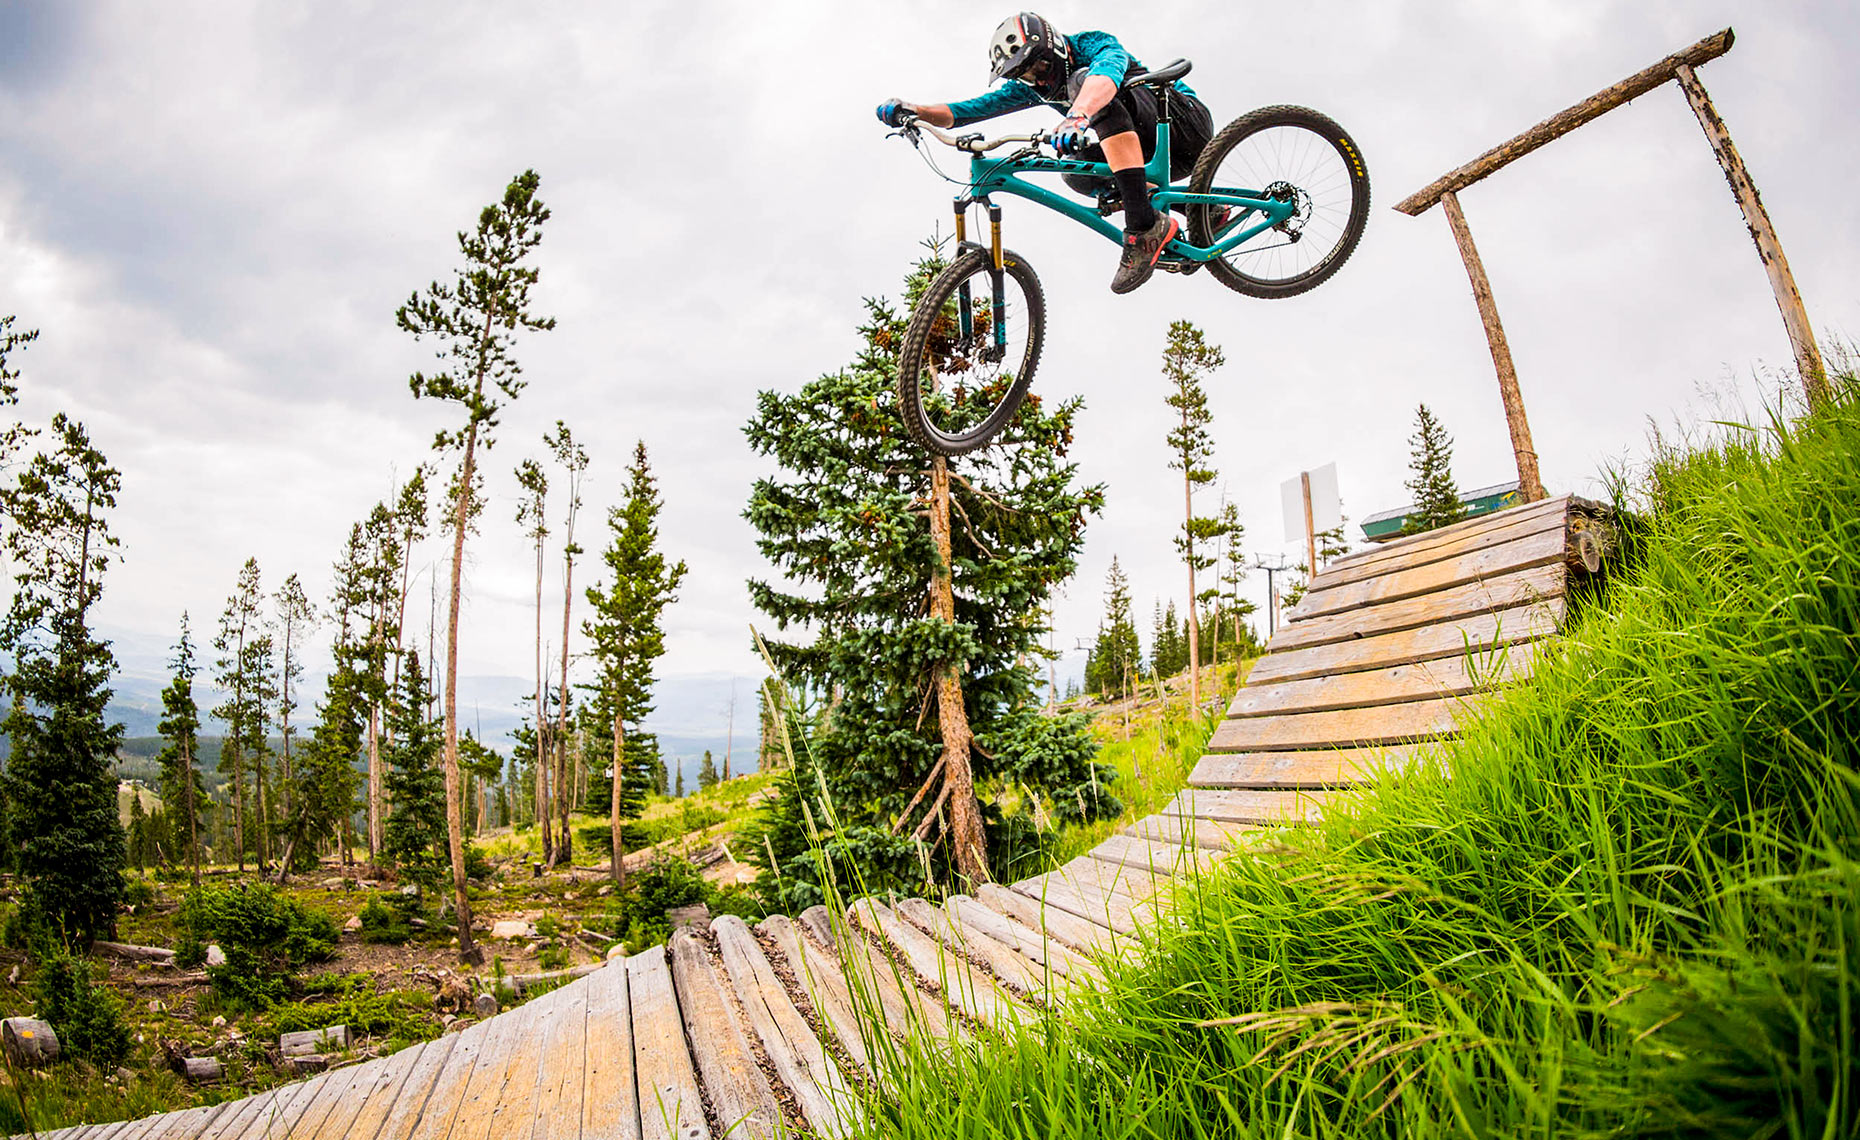 Dillon-Lemarr-Trestle-Bike-Park-Winter-Park-Colorado